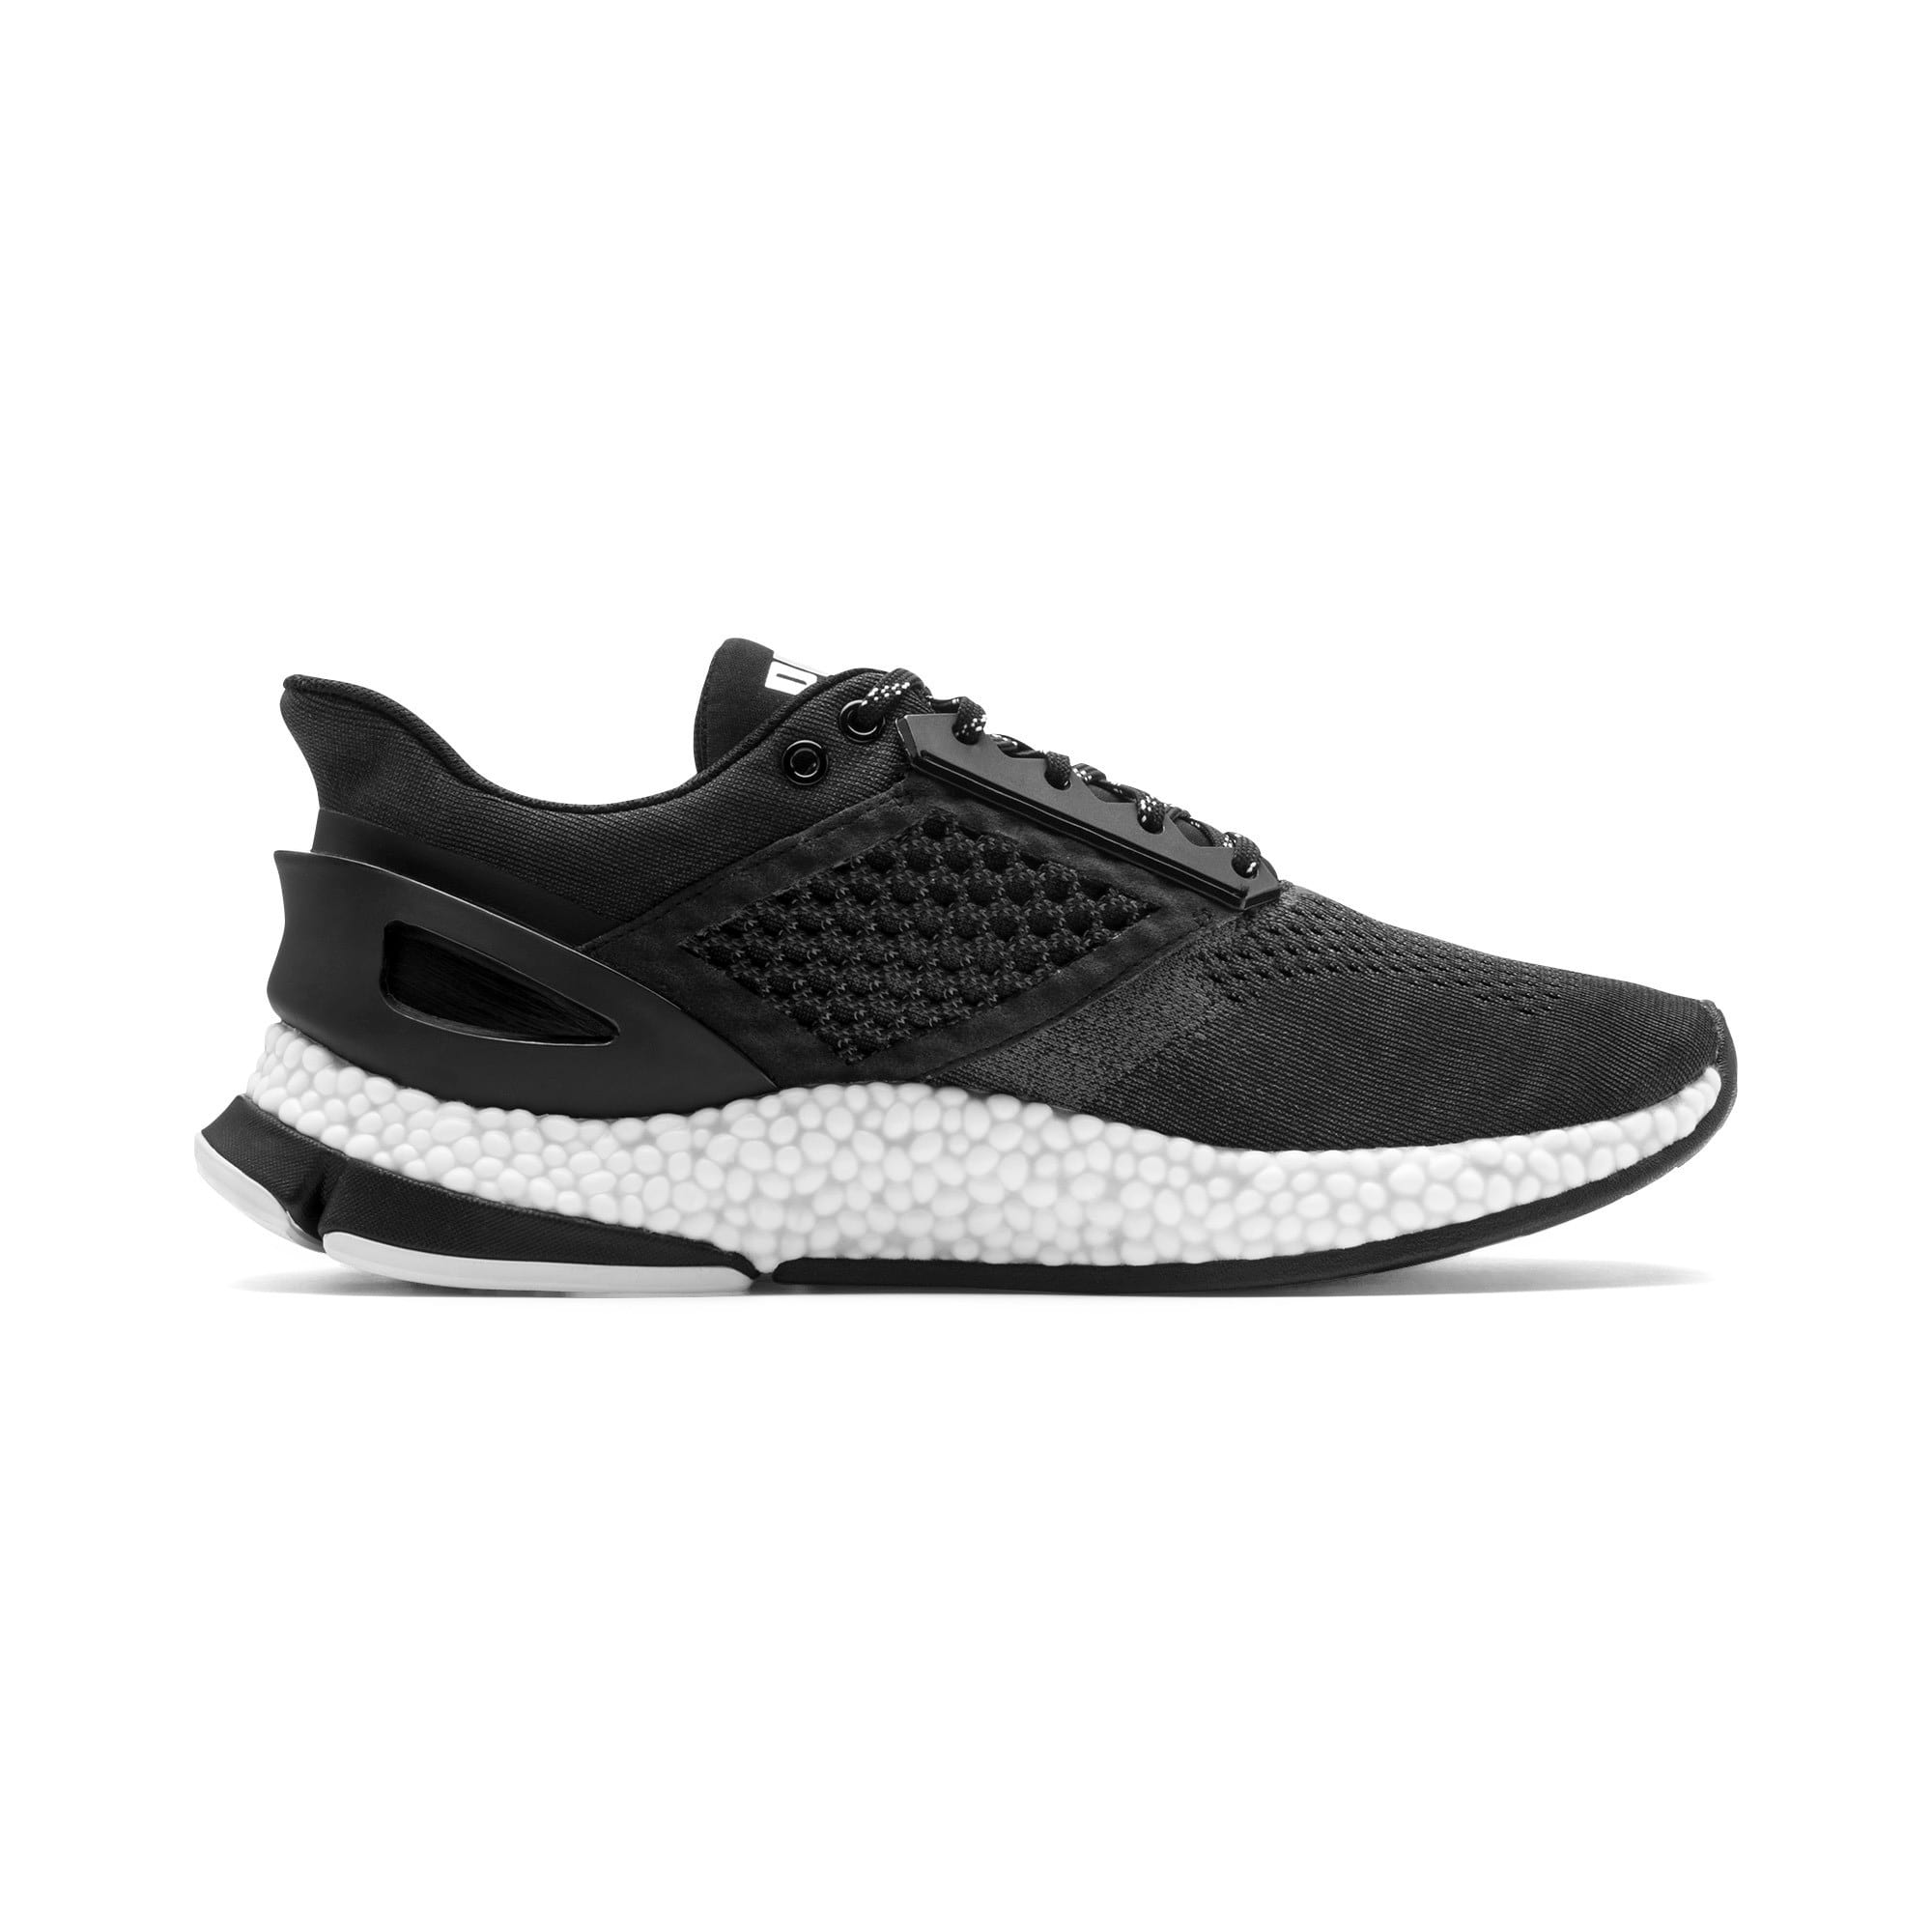 Thumbnail 7 of HYBRID NETFIT Astro Men's Running Shoes, Puma Black-Puma White, medium